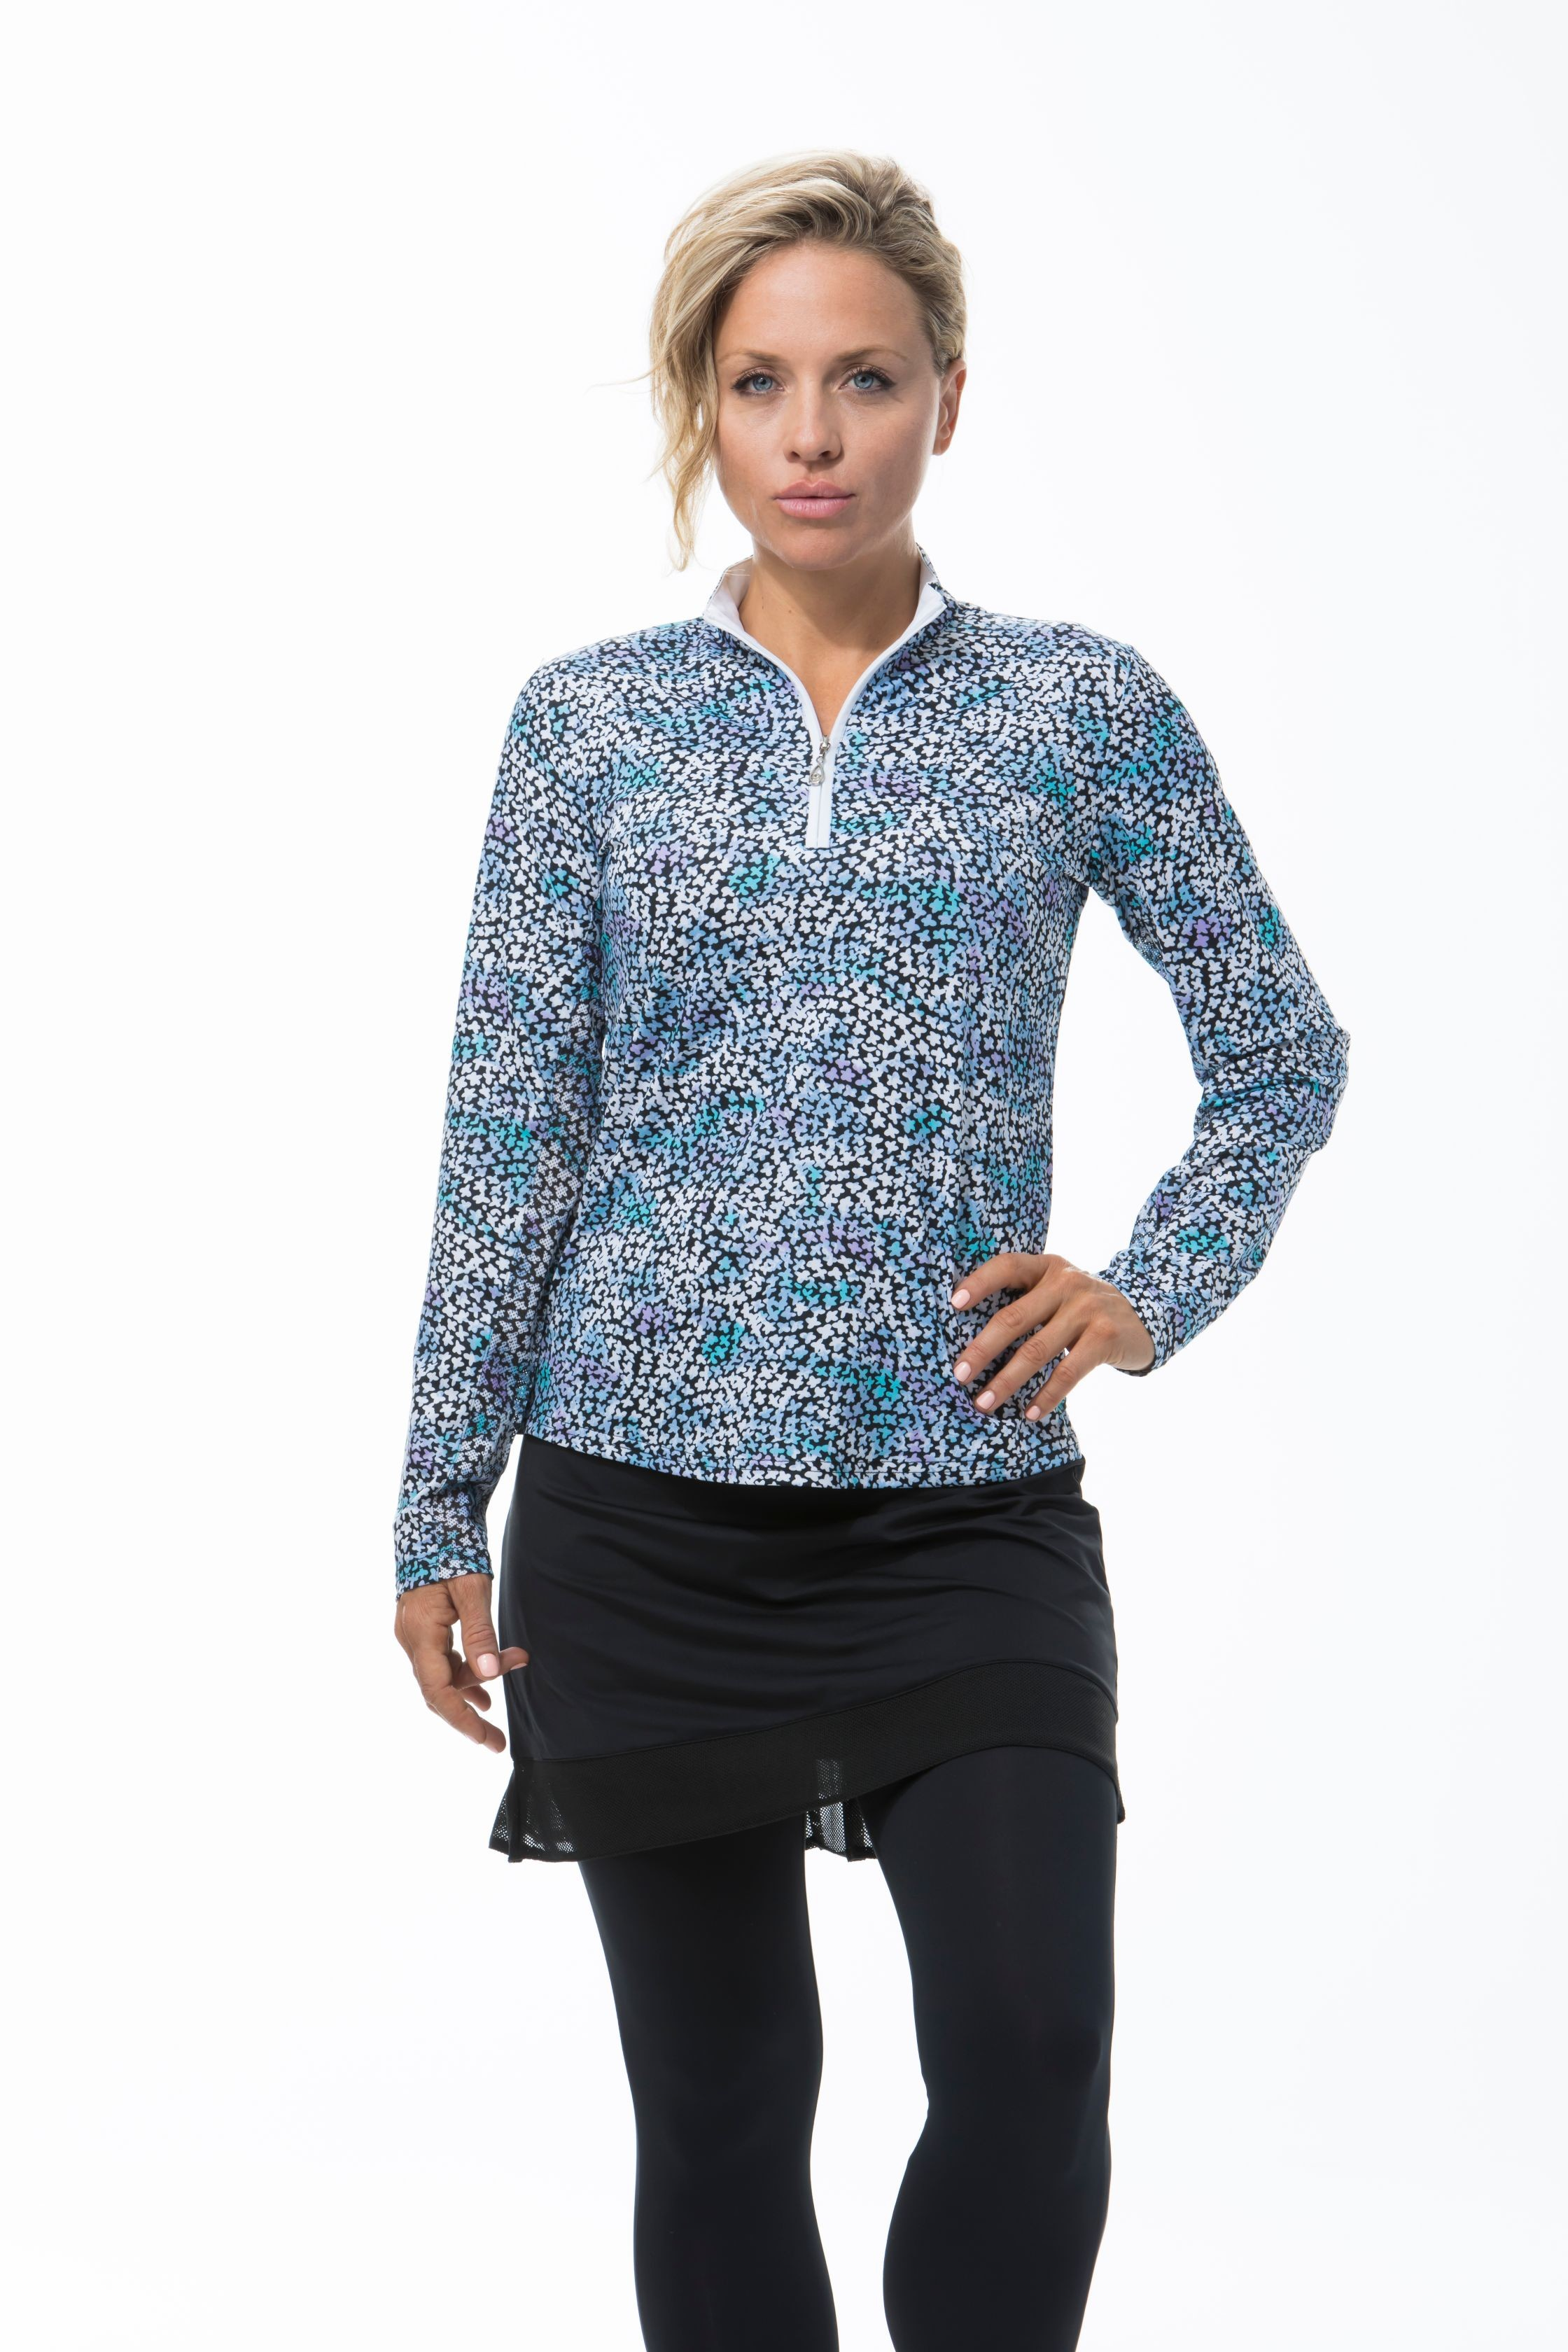 900463 - SolCool Zip Mock Forget Me Knot. Blue